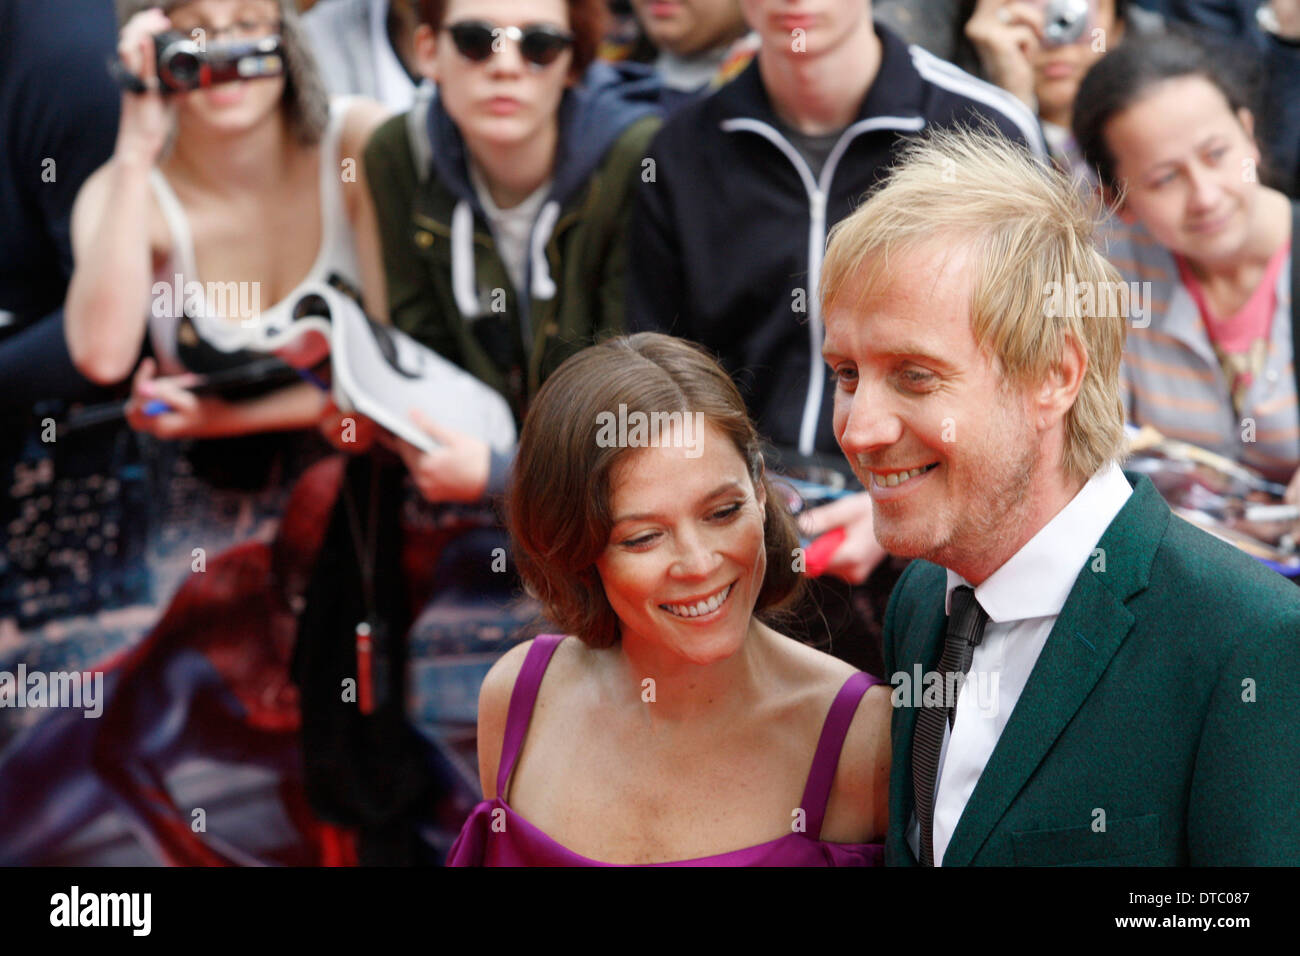 Anna Friel and Rhys Ifans - Stock Image